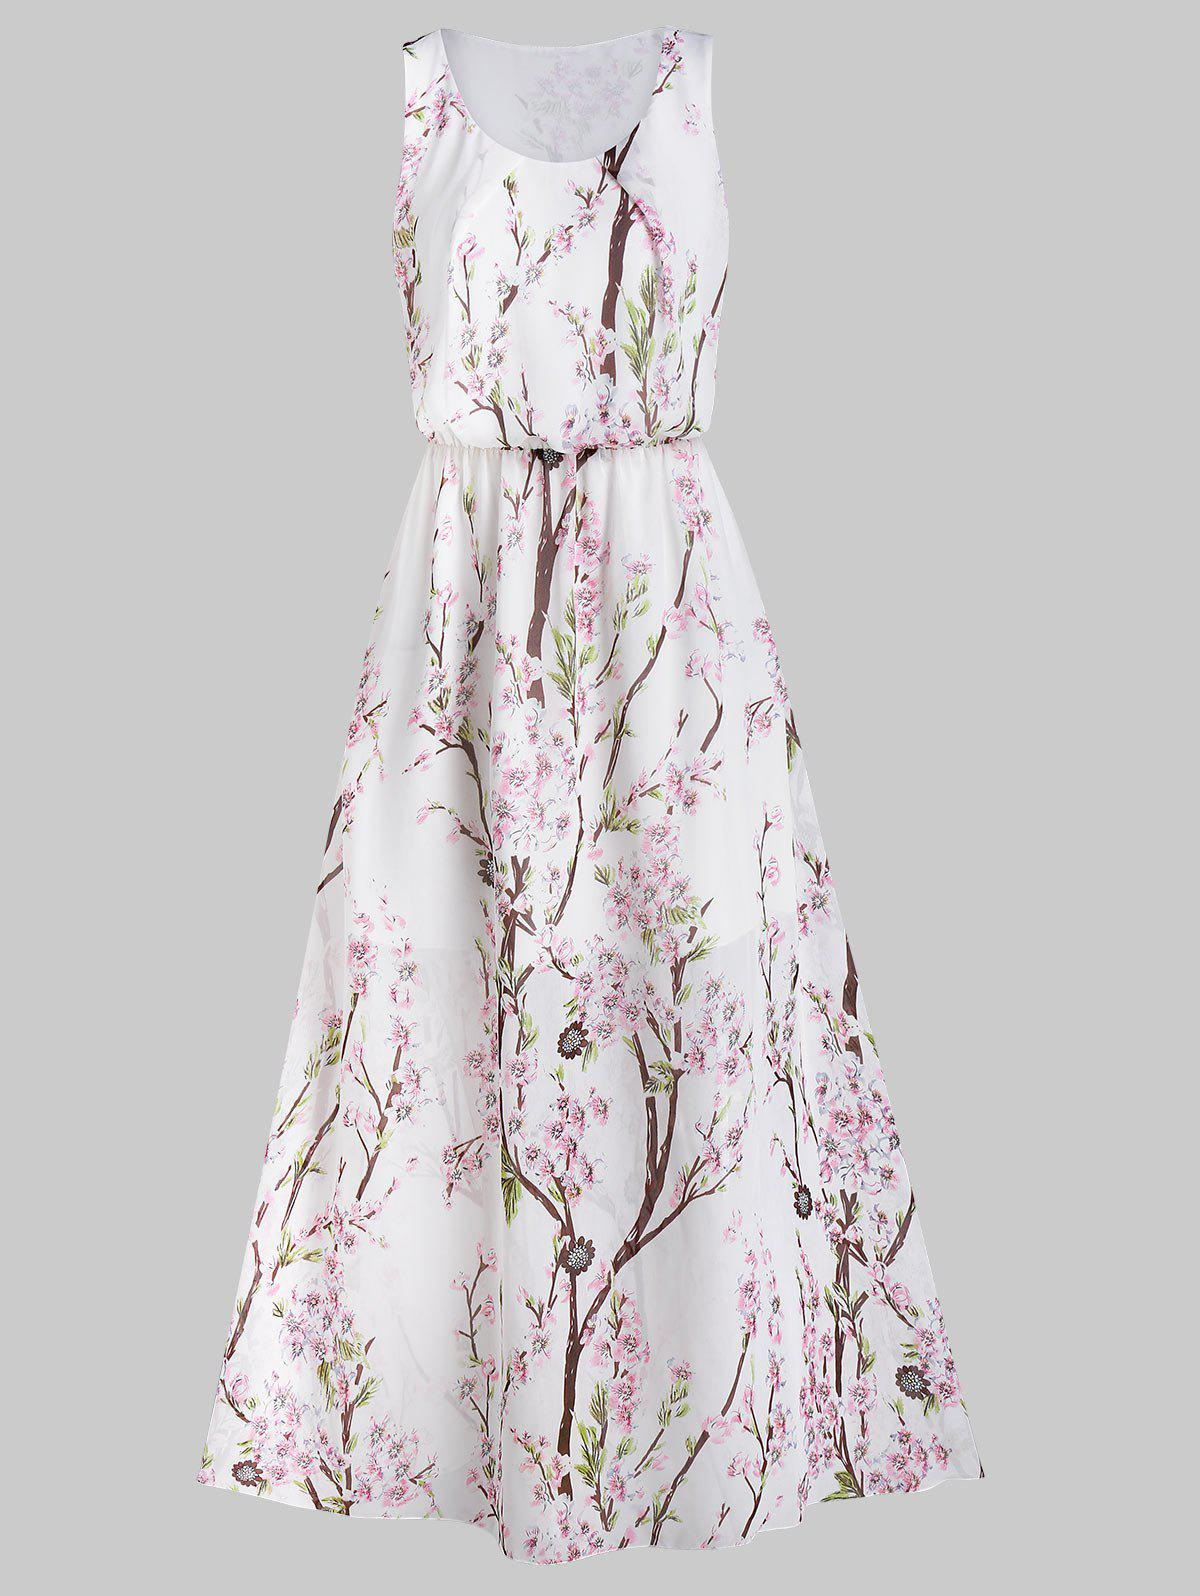 Floral Print Elastic Waist Maxi Dress - WHITE S